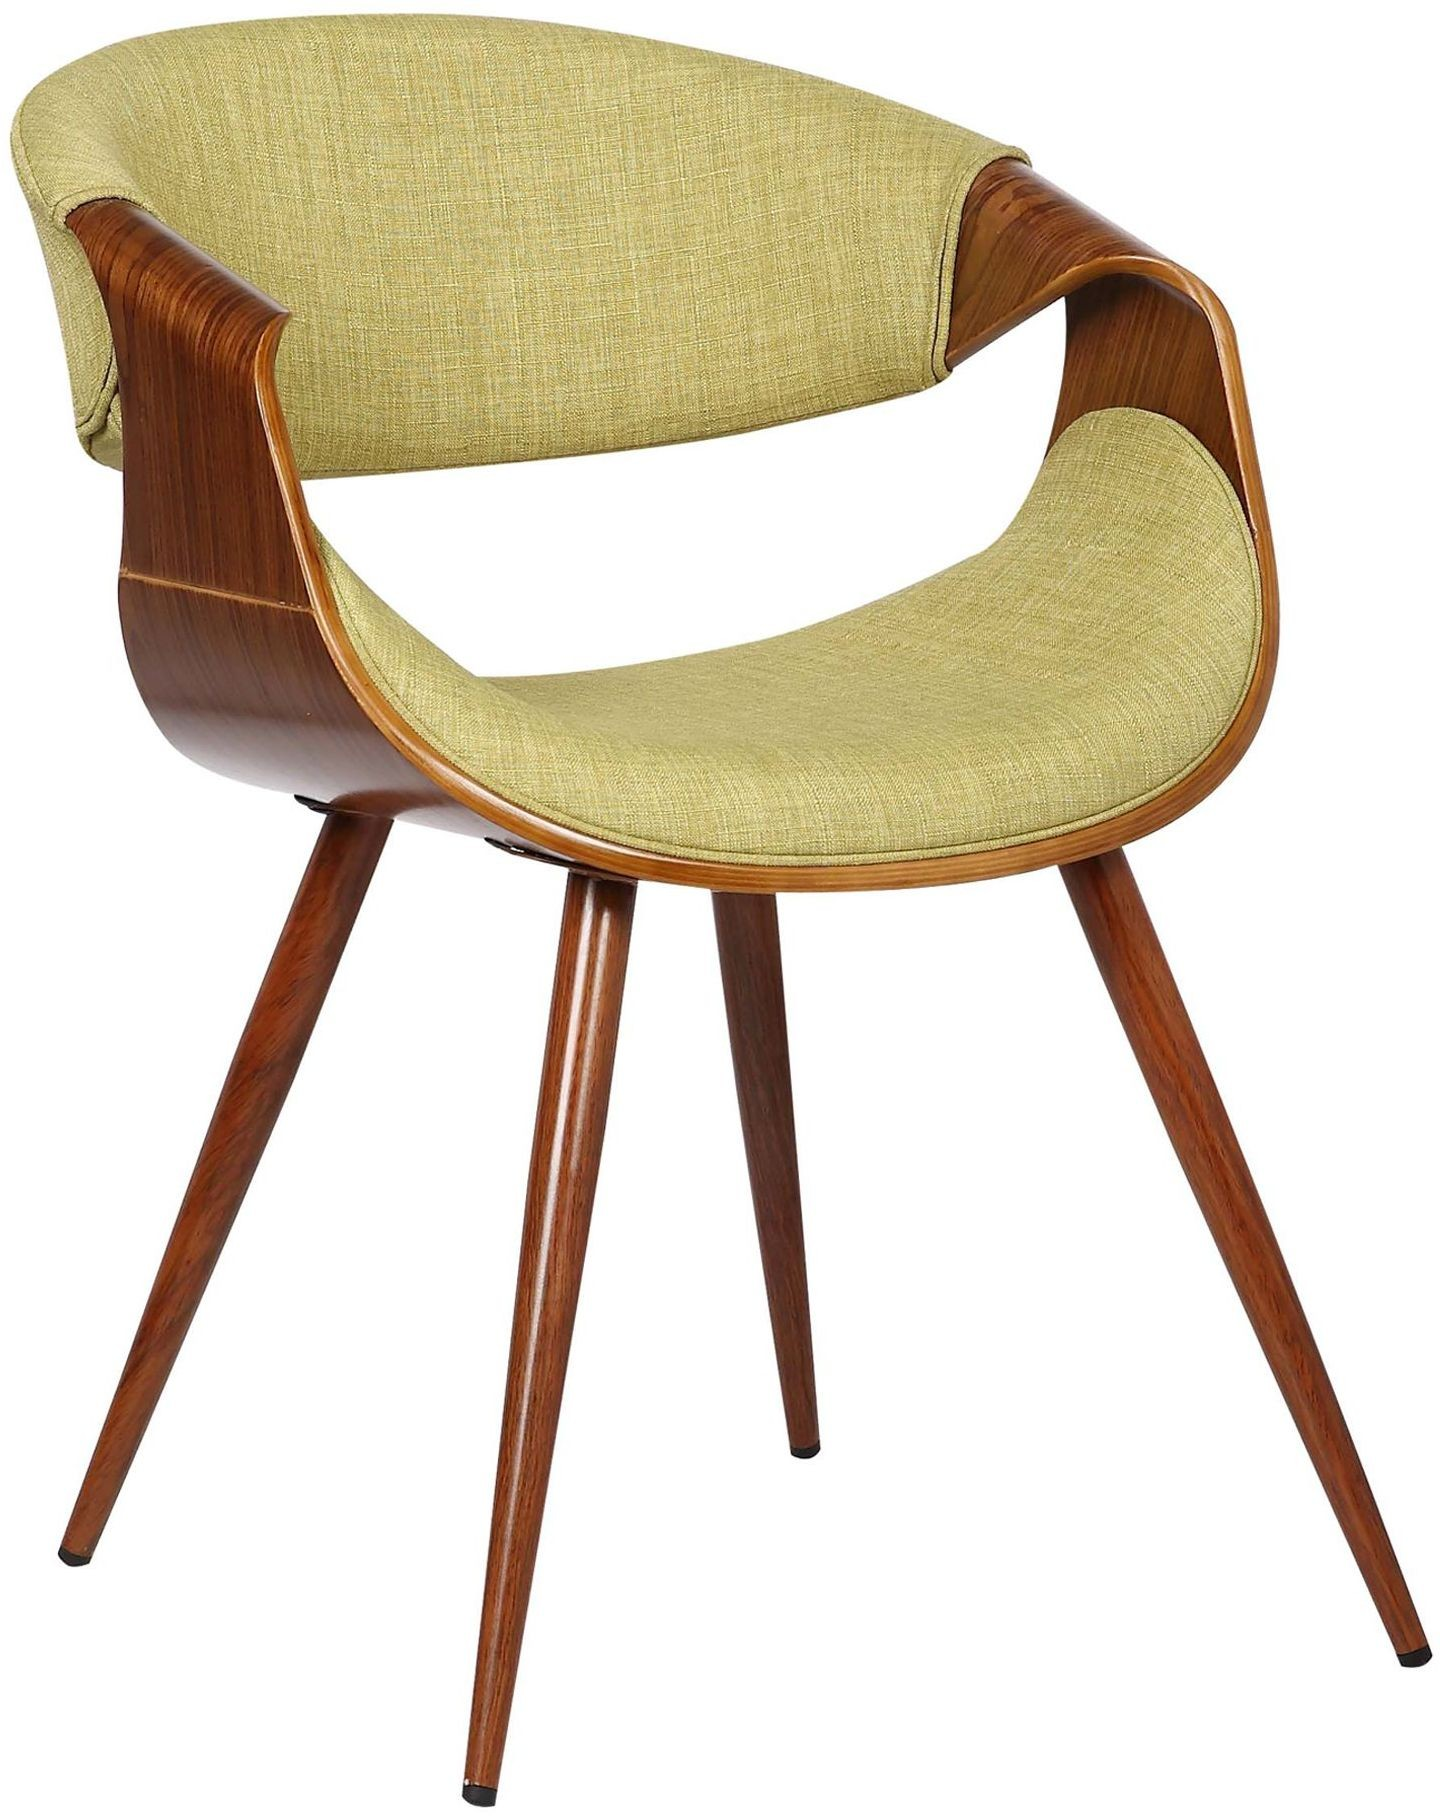 Butterfly MidCentury Green Dining Chair Set of 2 from